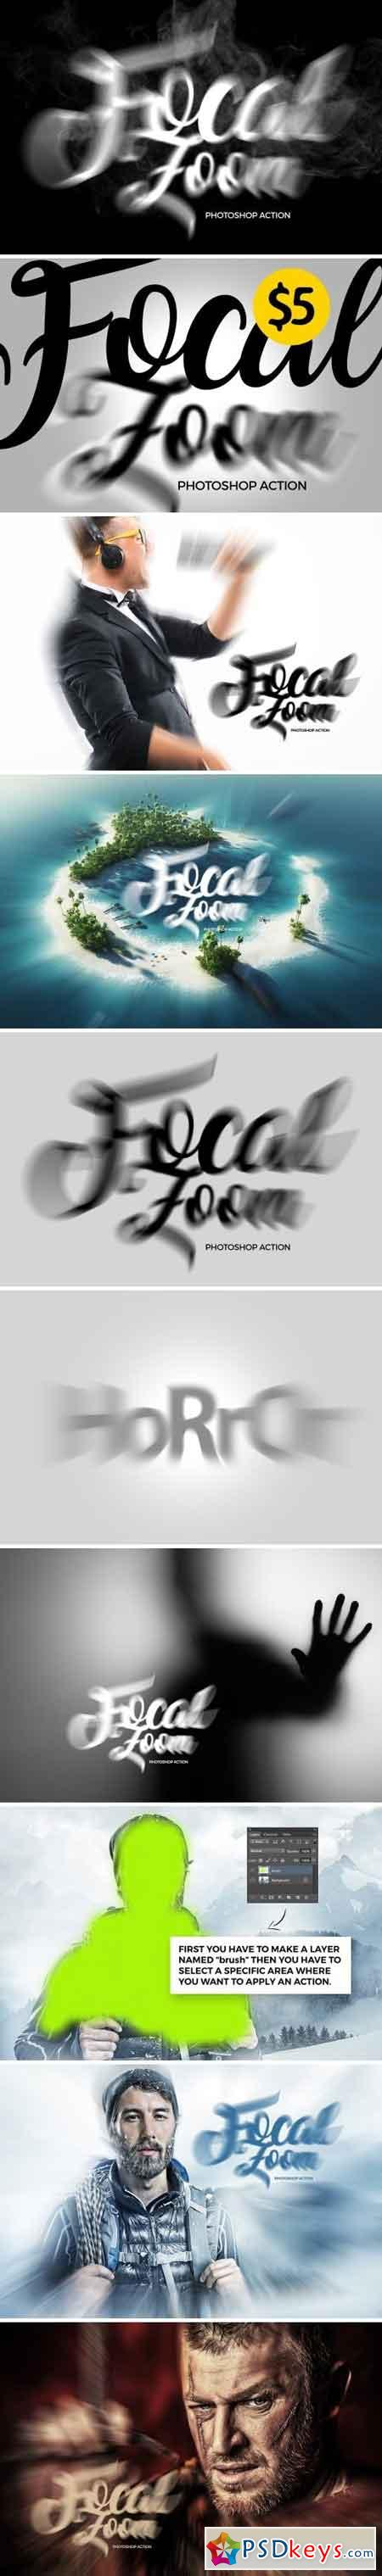 Focal Zoom Photoshop Action 1578439